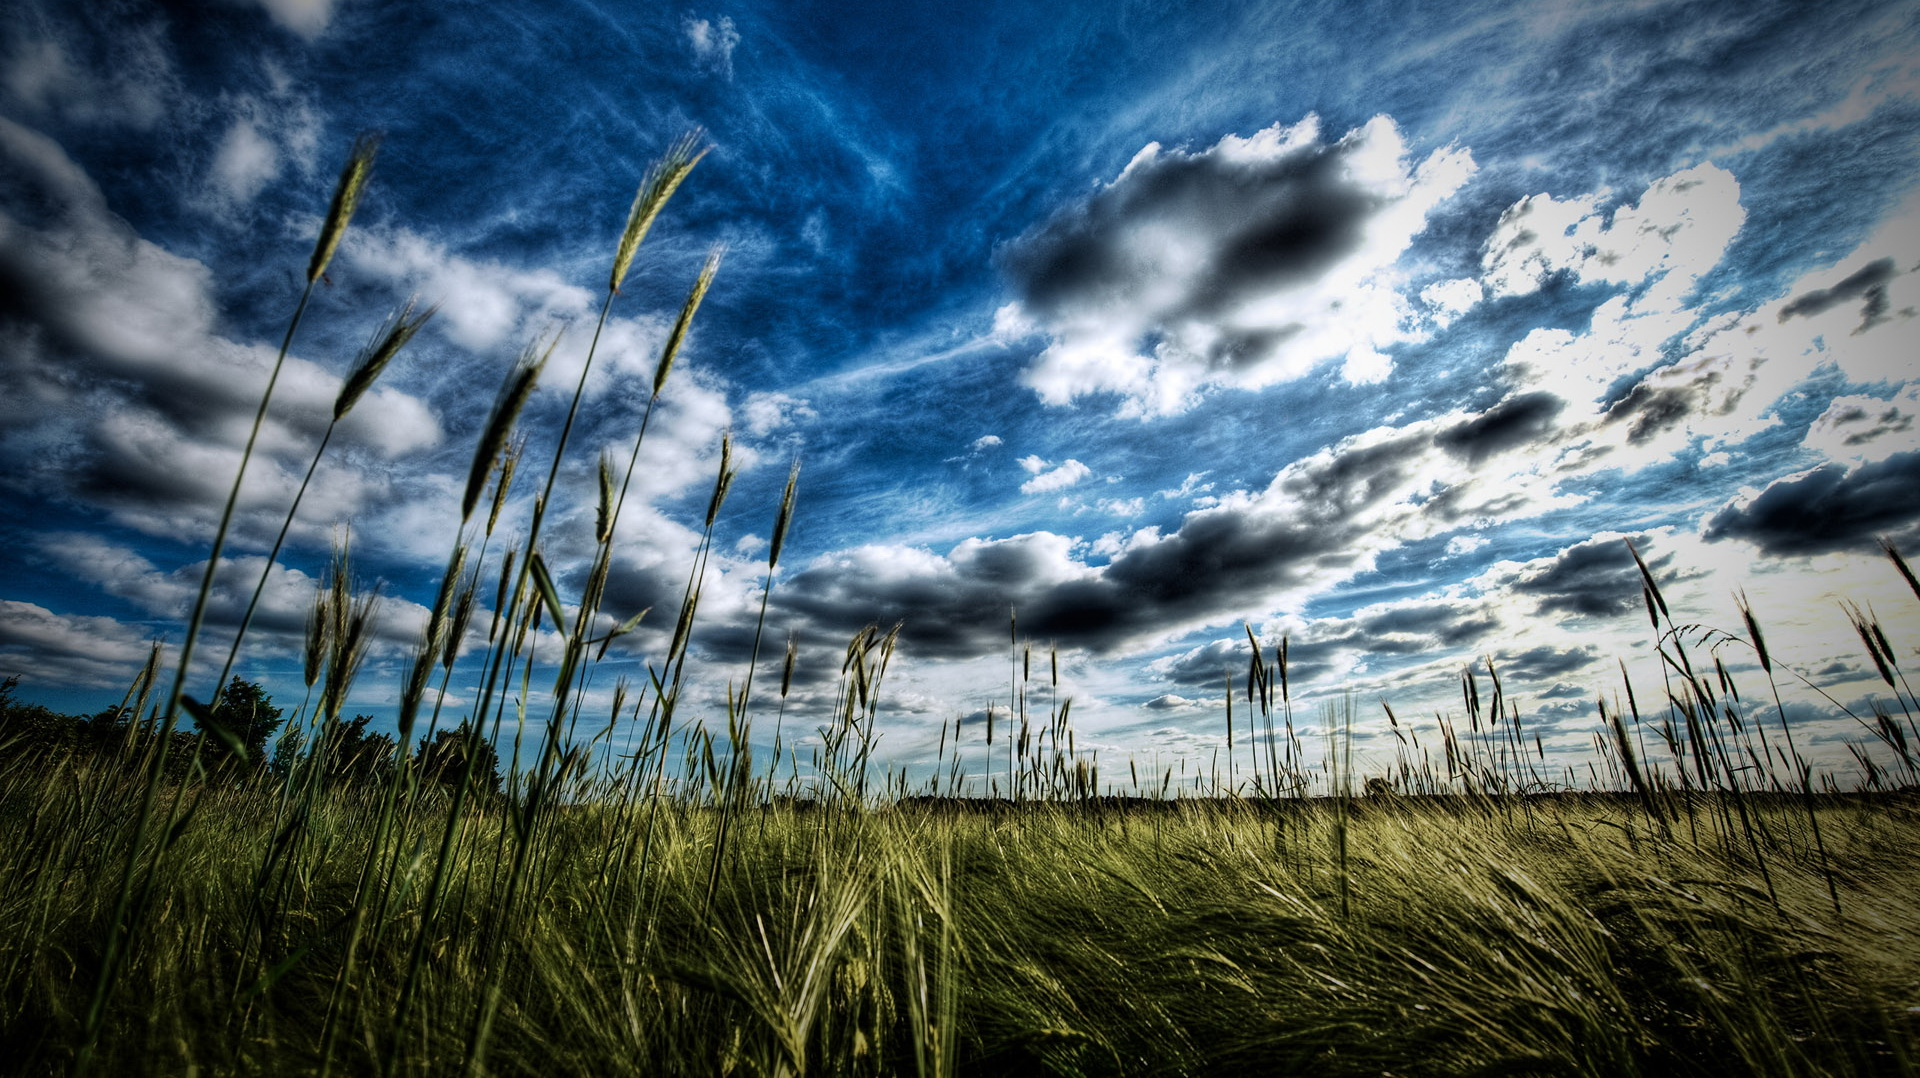 click to free download the wallpaper--Pics of Natural Scene - The Blue Sky with White Clouds, Green Grass Beneath, an Amazing Scene 1920X1080 free wallpaper download